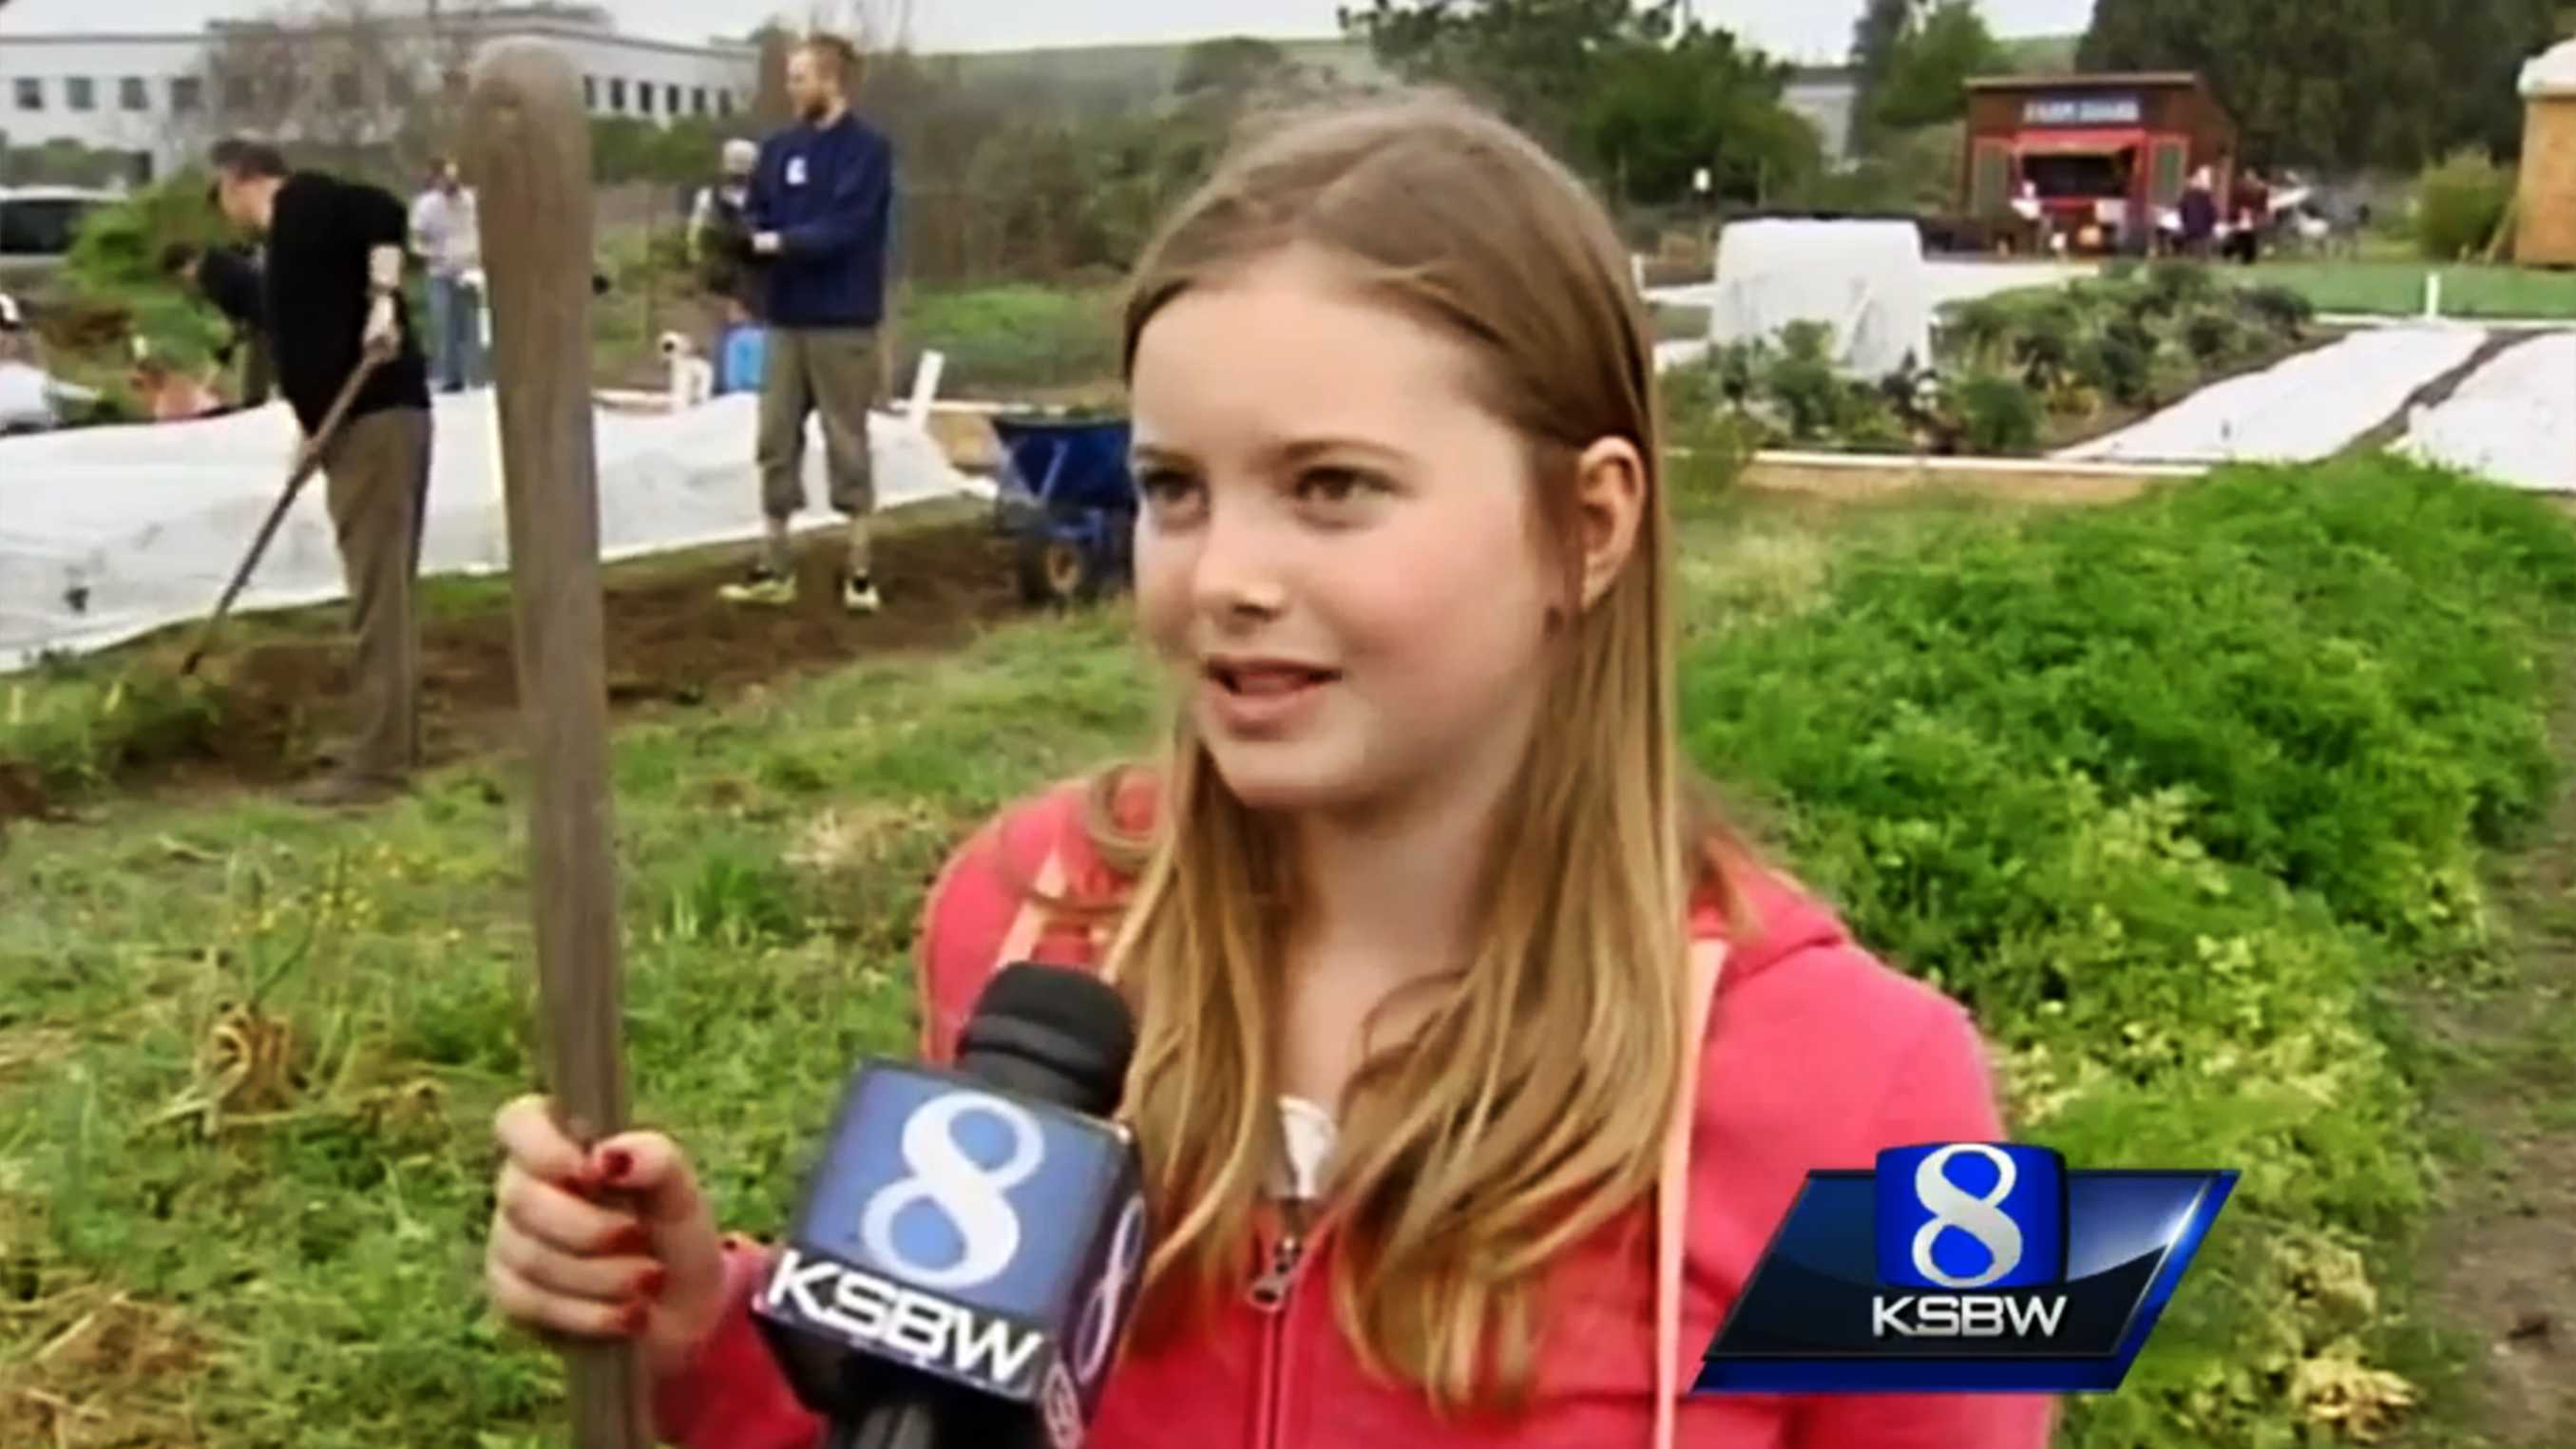 """Collette """"Coco"""" Lazenby was interviewed earlier this year by KSBW while she was volunteering at a homeless garden project in Santa Cruz."""